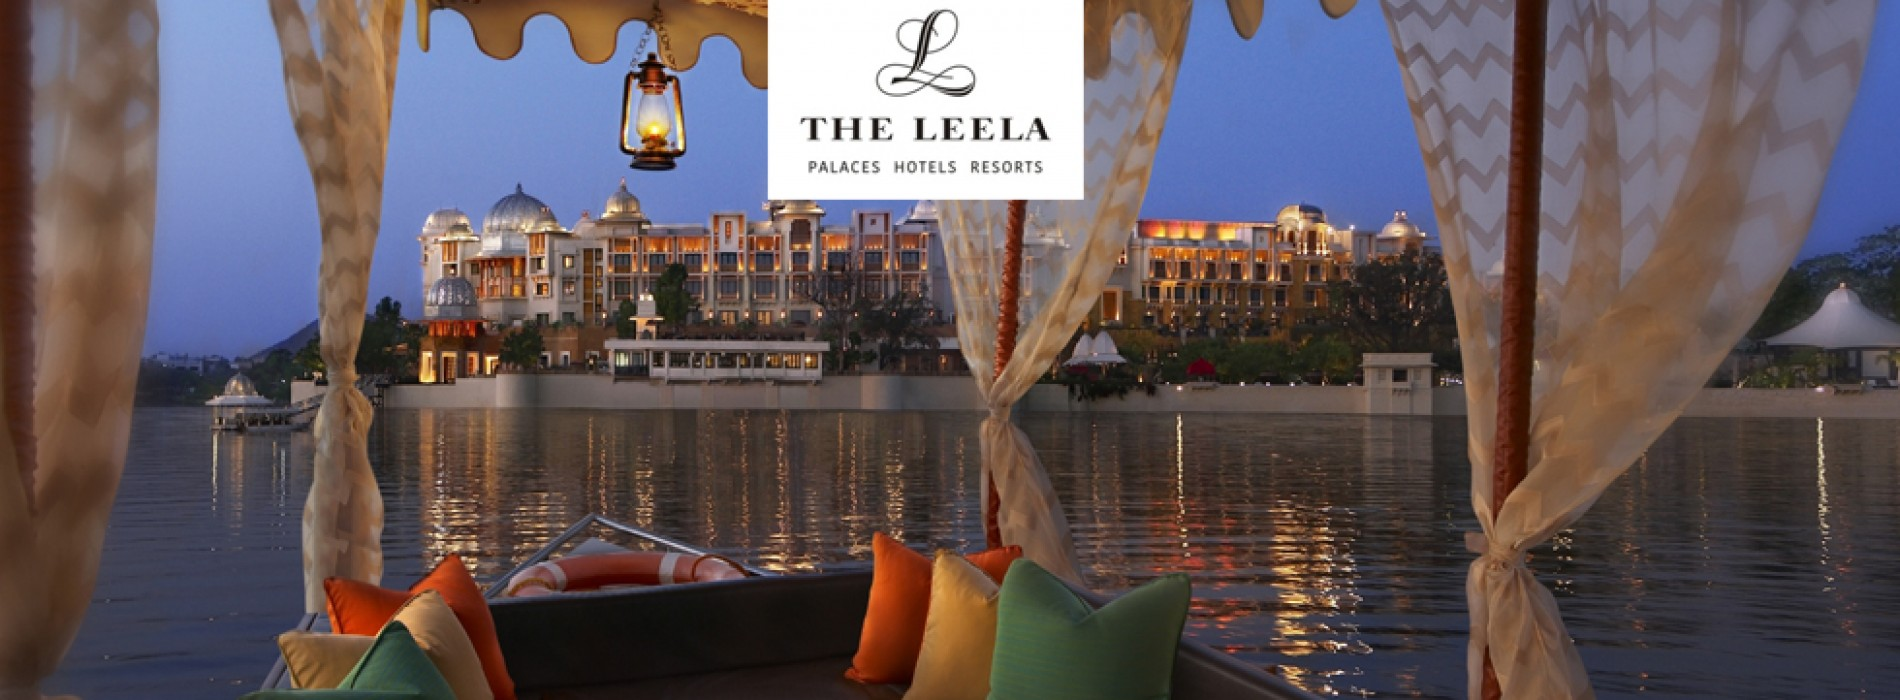 The Leela Palace Udaipur voted one of the best hotels in the world